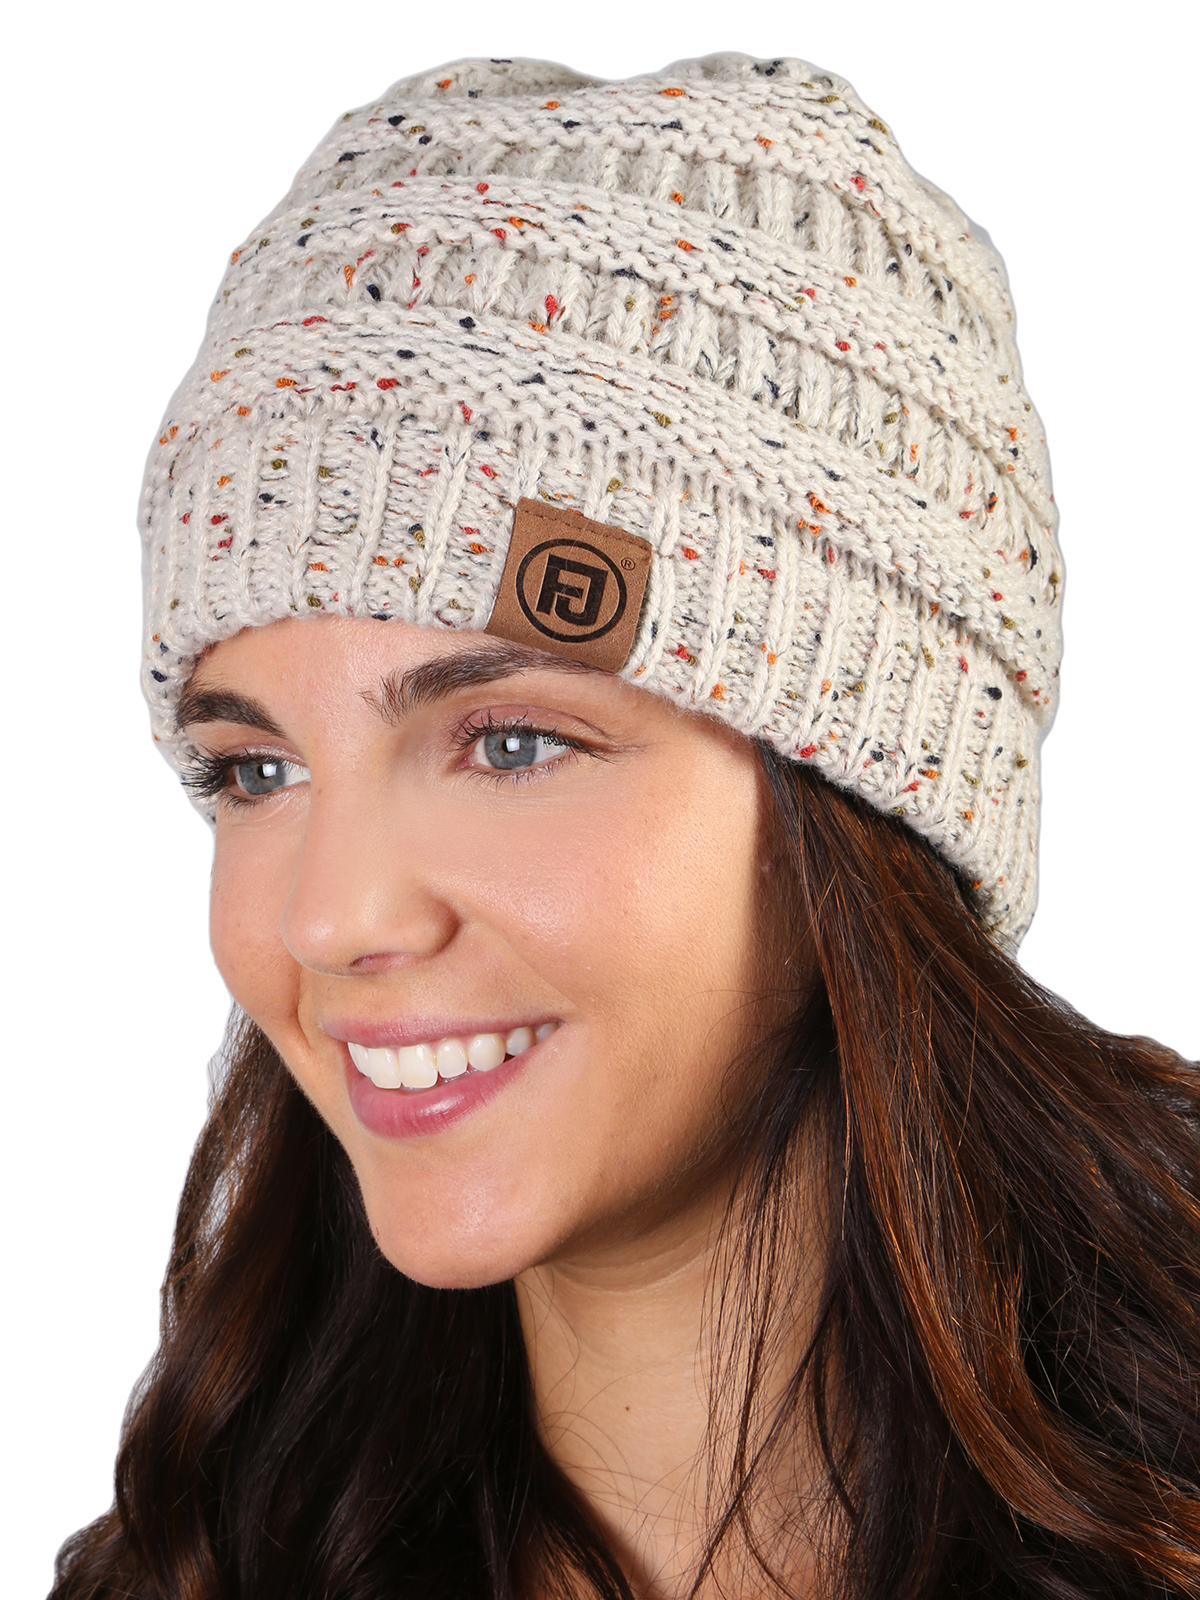 Funky Junque s FJ Knit Cap Women s Men s Winter Hat Soft Slightly Slouchy Confetti  Beanie - Oatmeal - Walmart.com 054e5181b3b